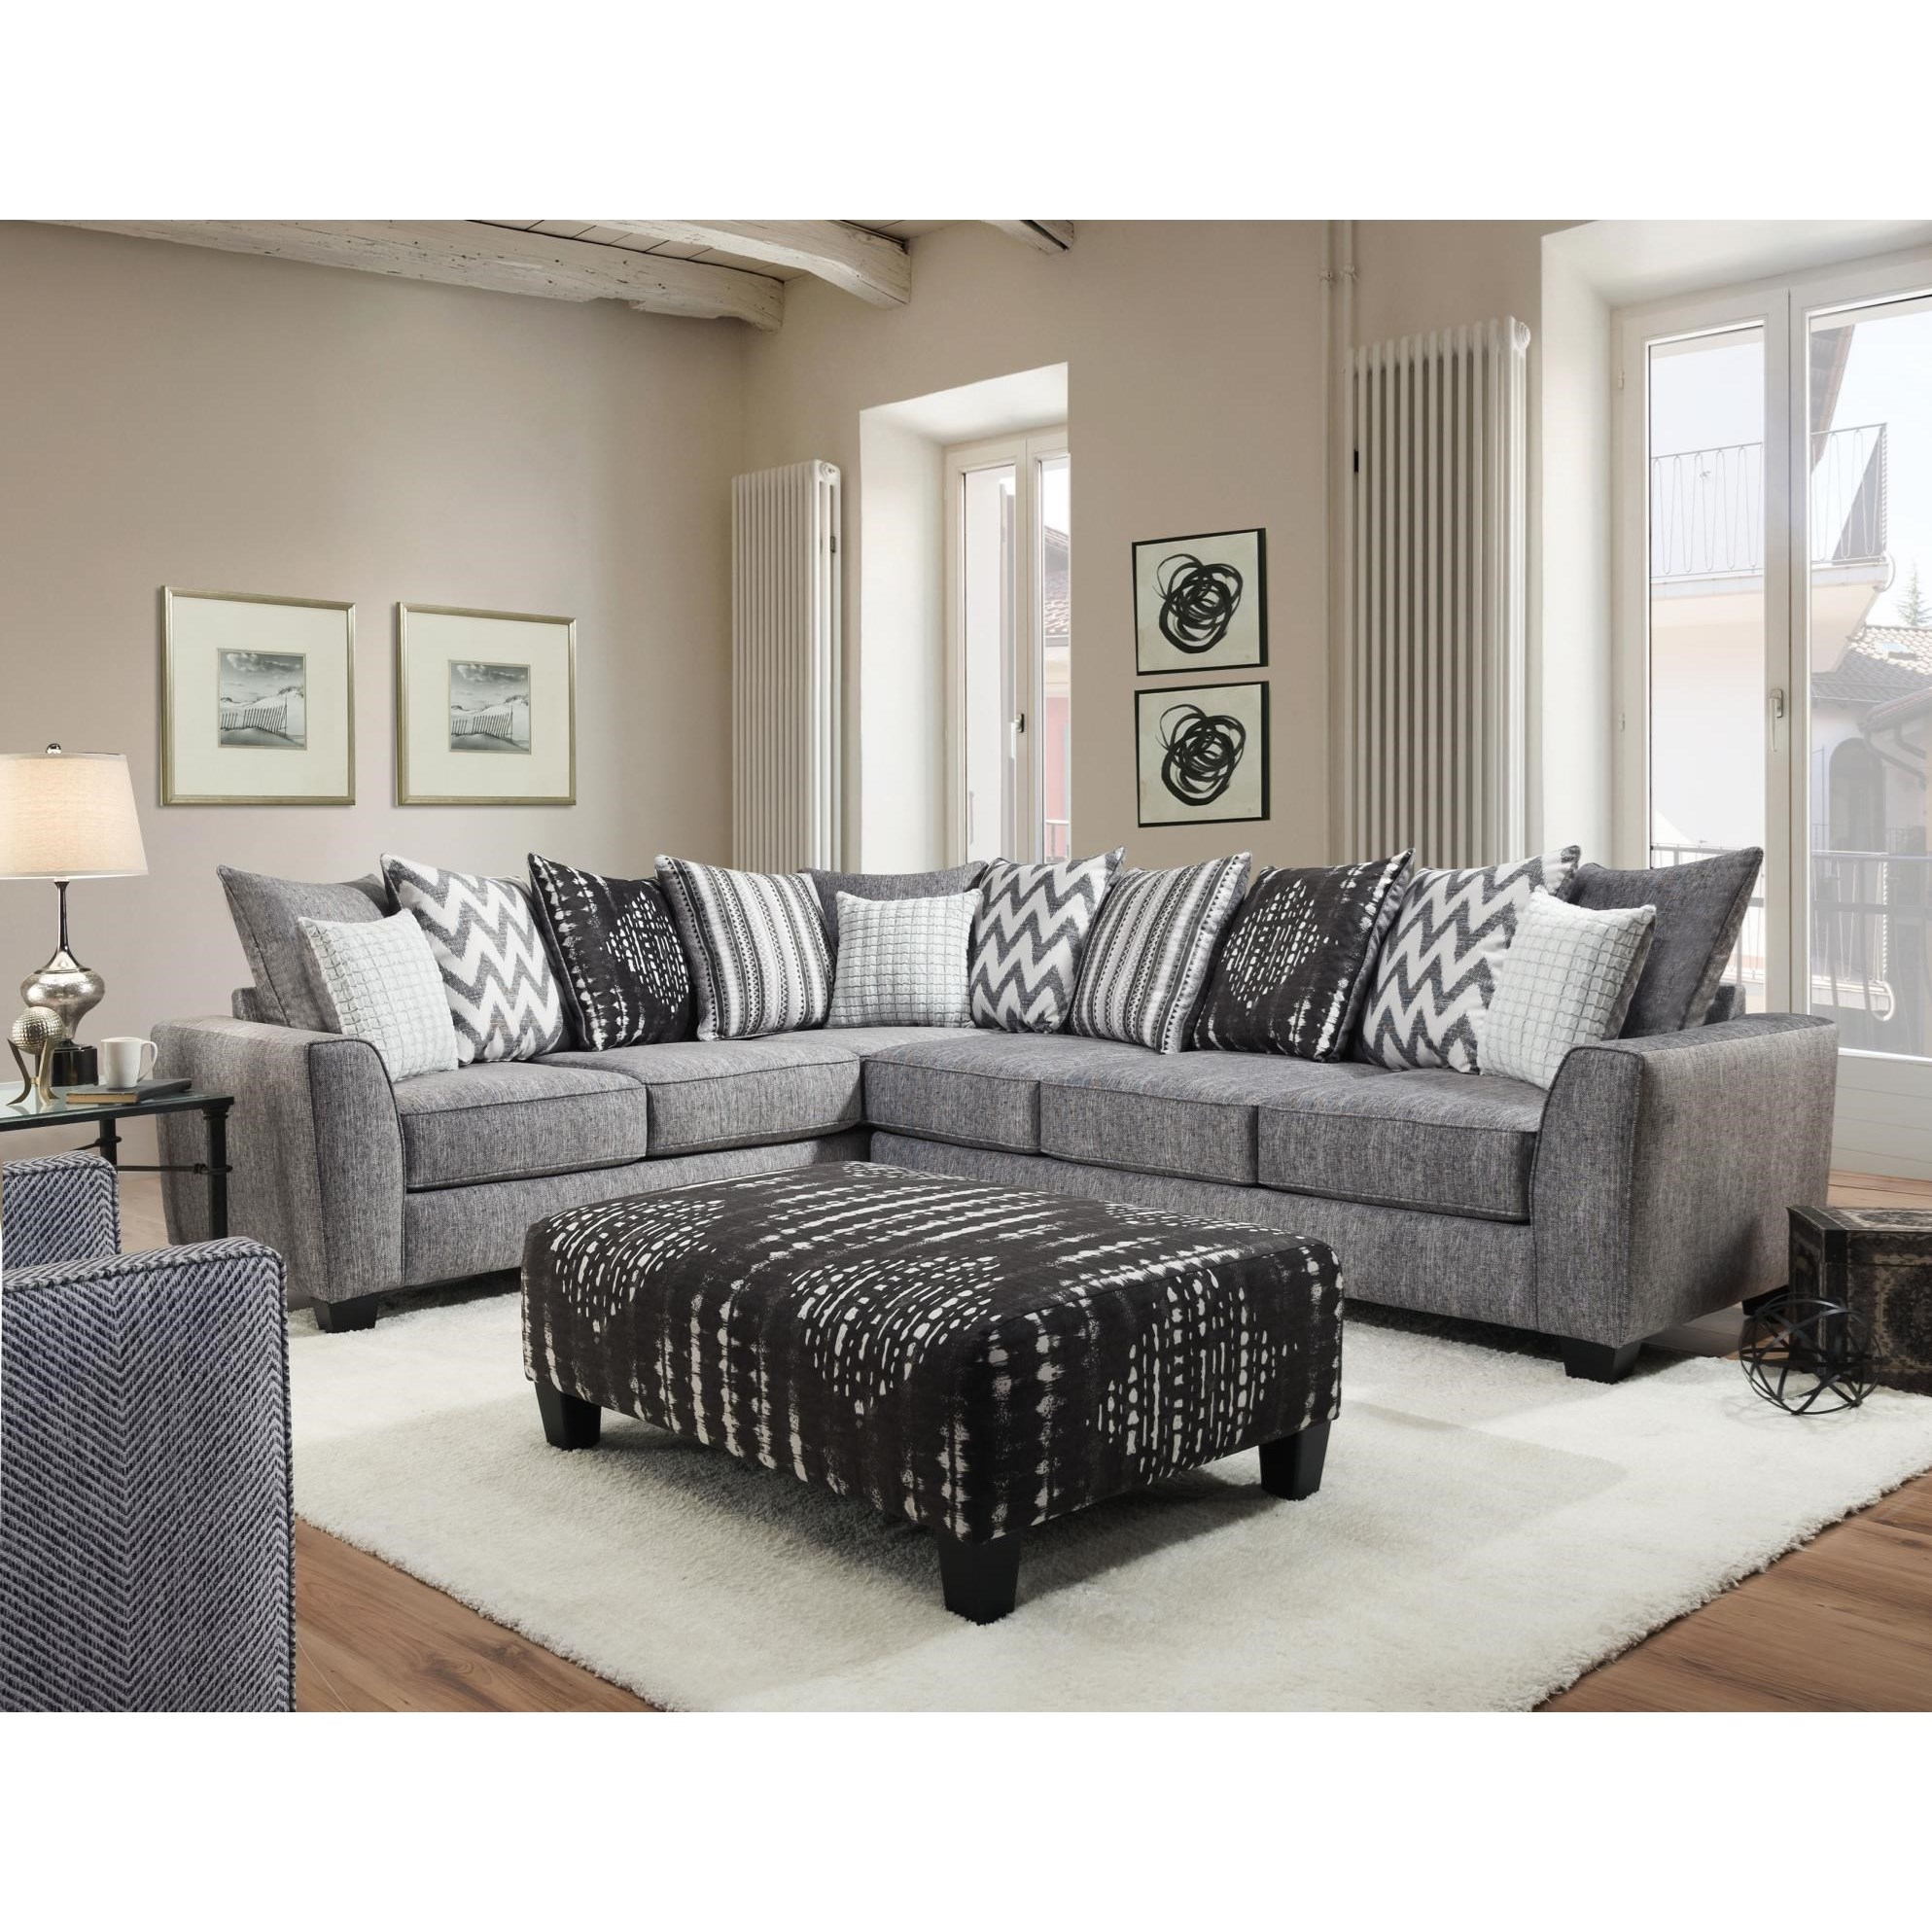 484 2 PC Sectional Sofa by Albany at A1 Furniture & Mattress